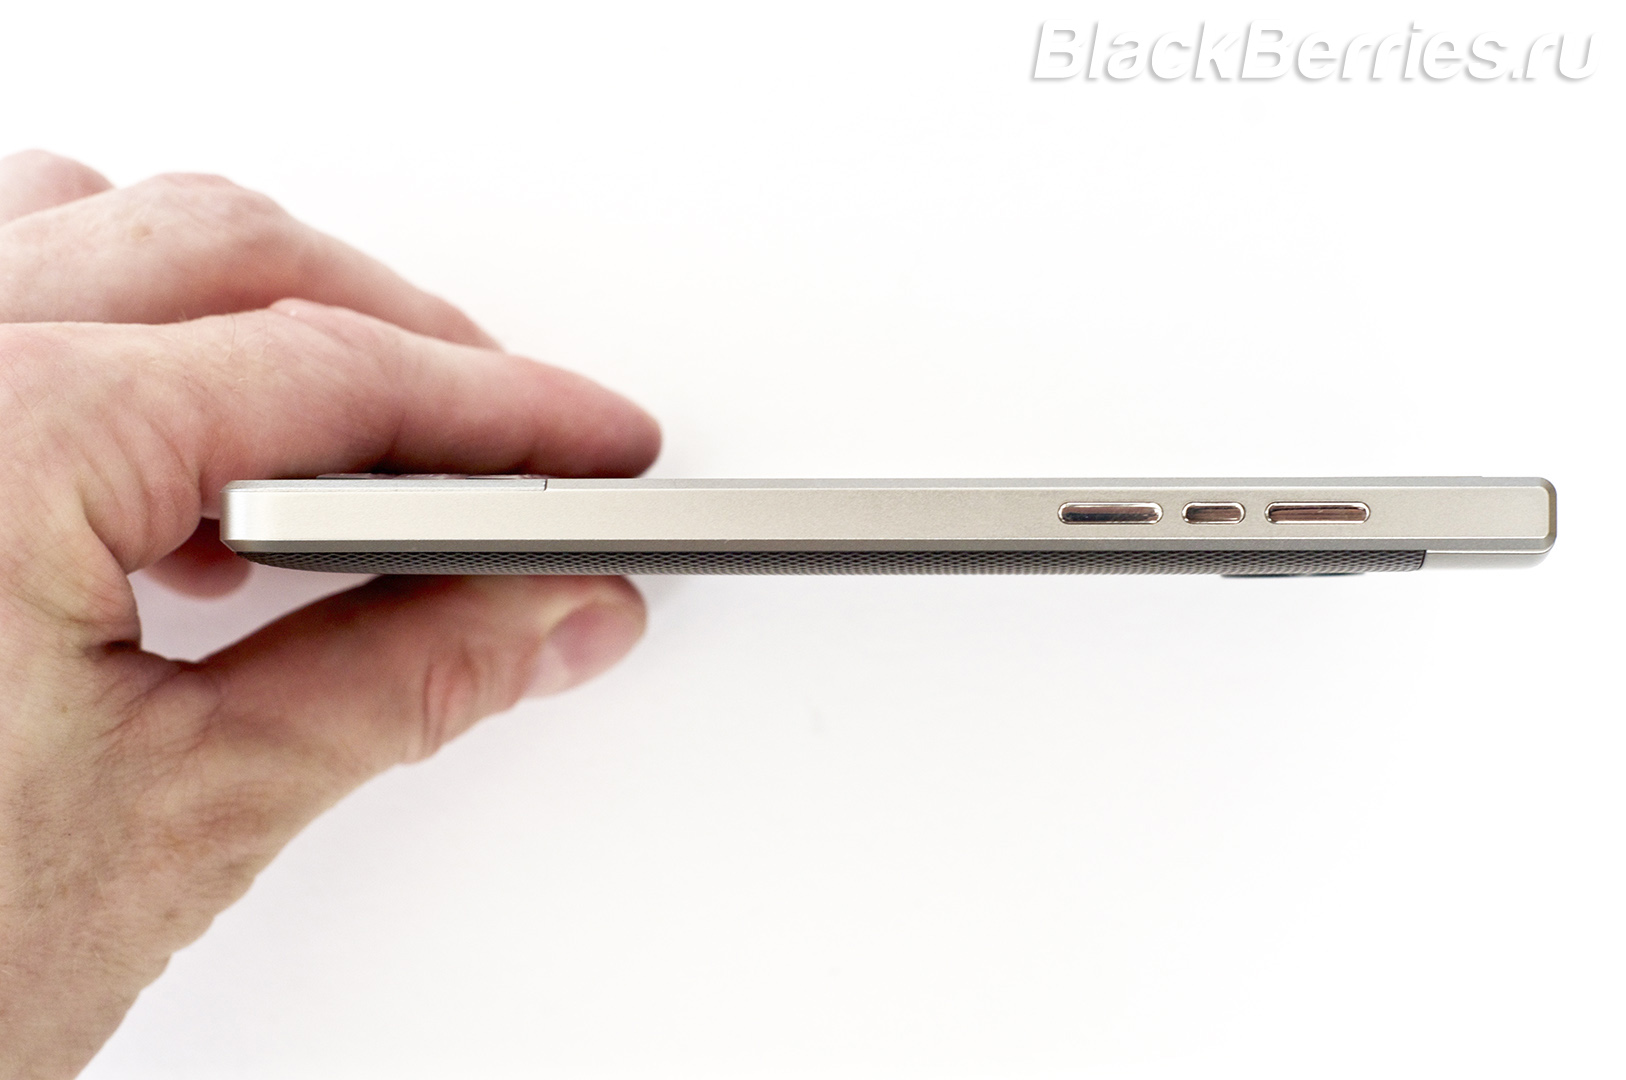 BlackBerry-Passport-Silver-Edition-Review-46